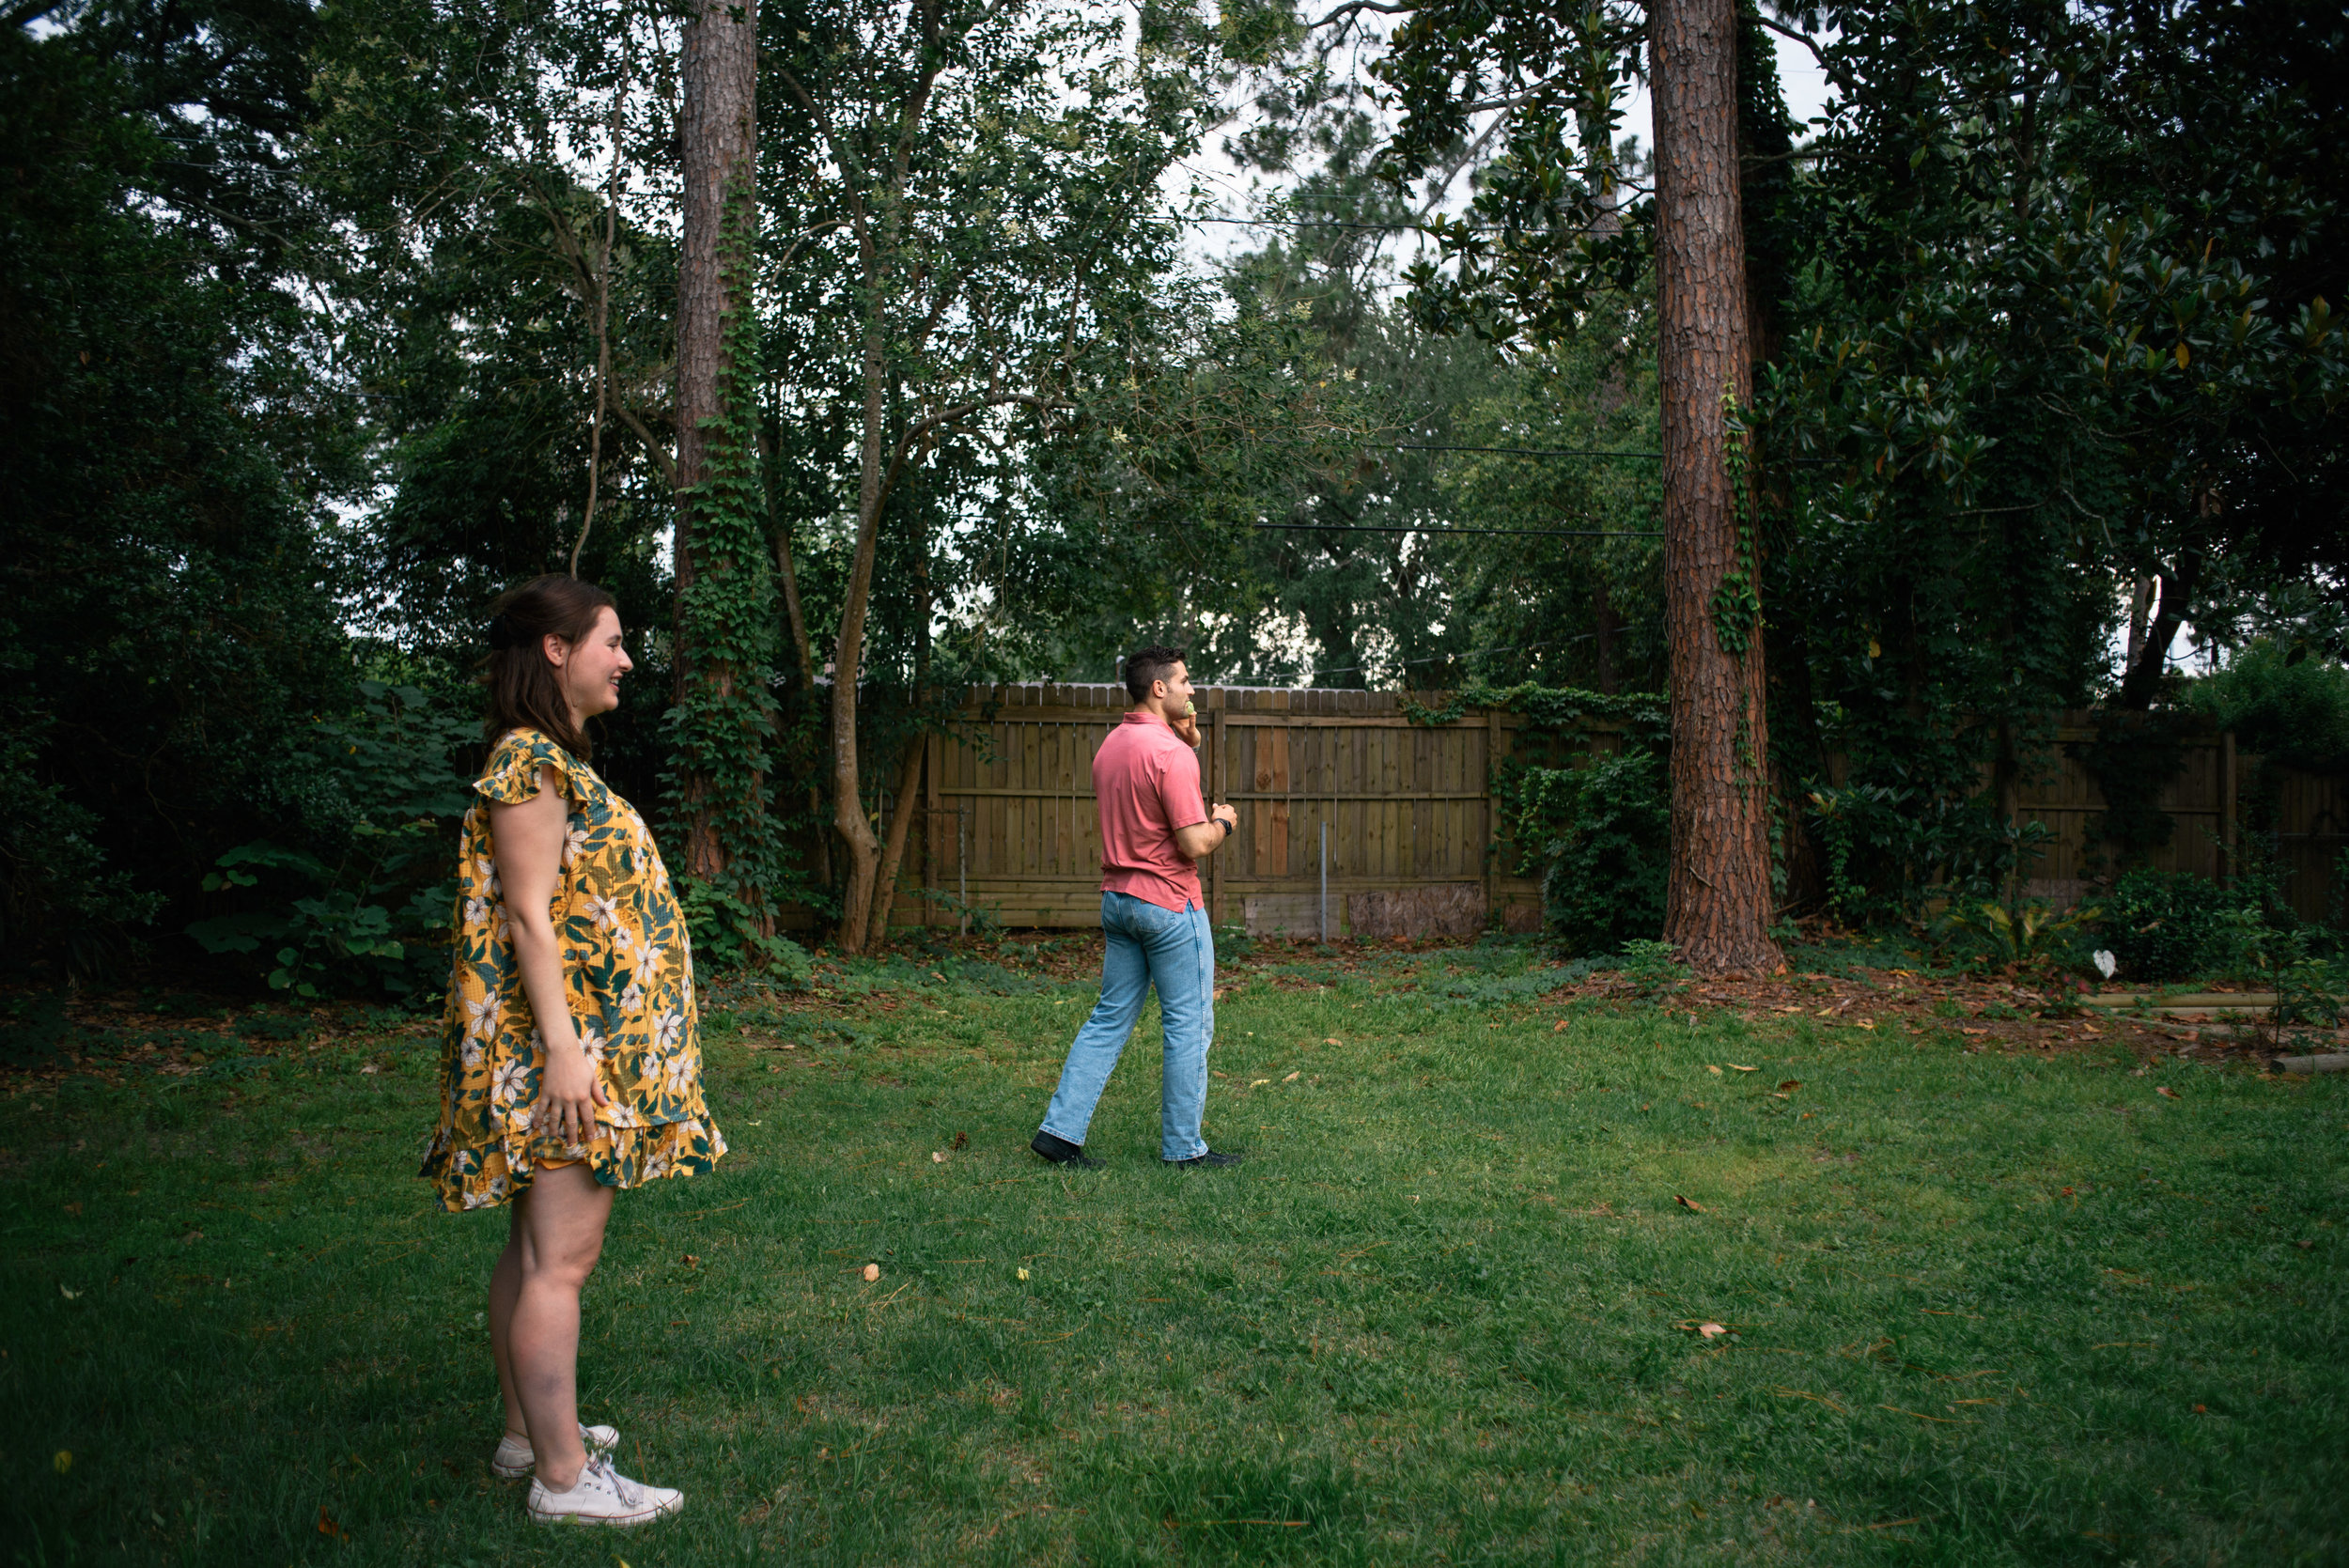 ellie-and-anthony-maternity-photos-june-2018 (52 of 189).jpg